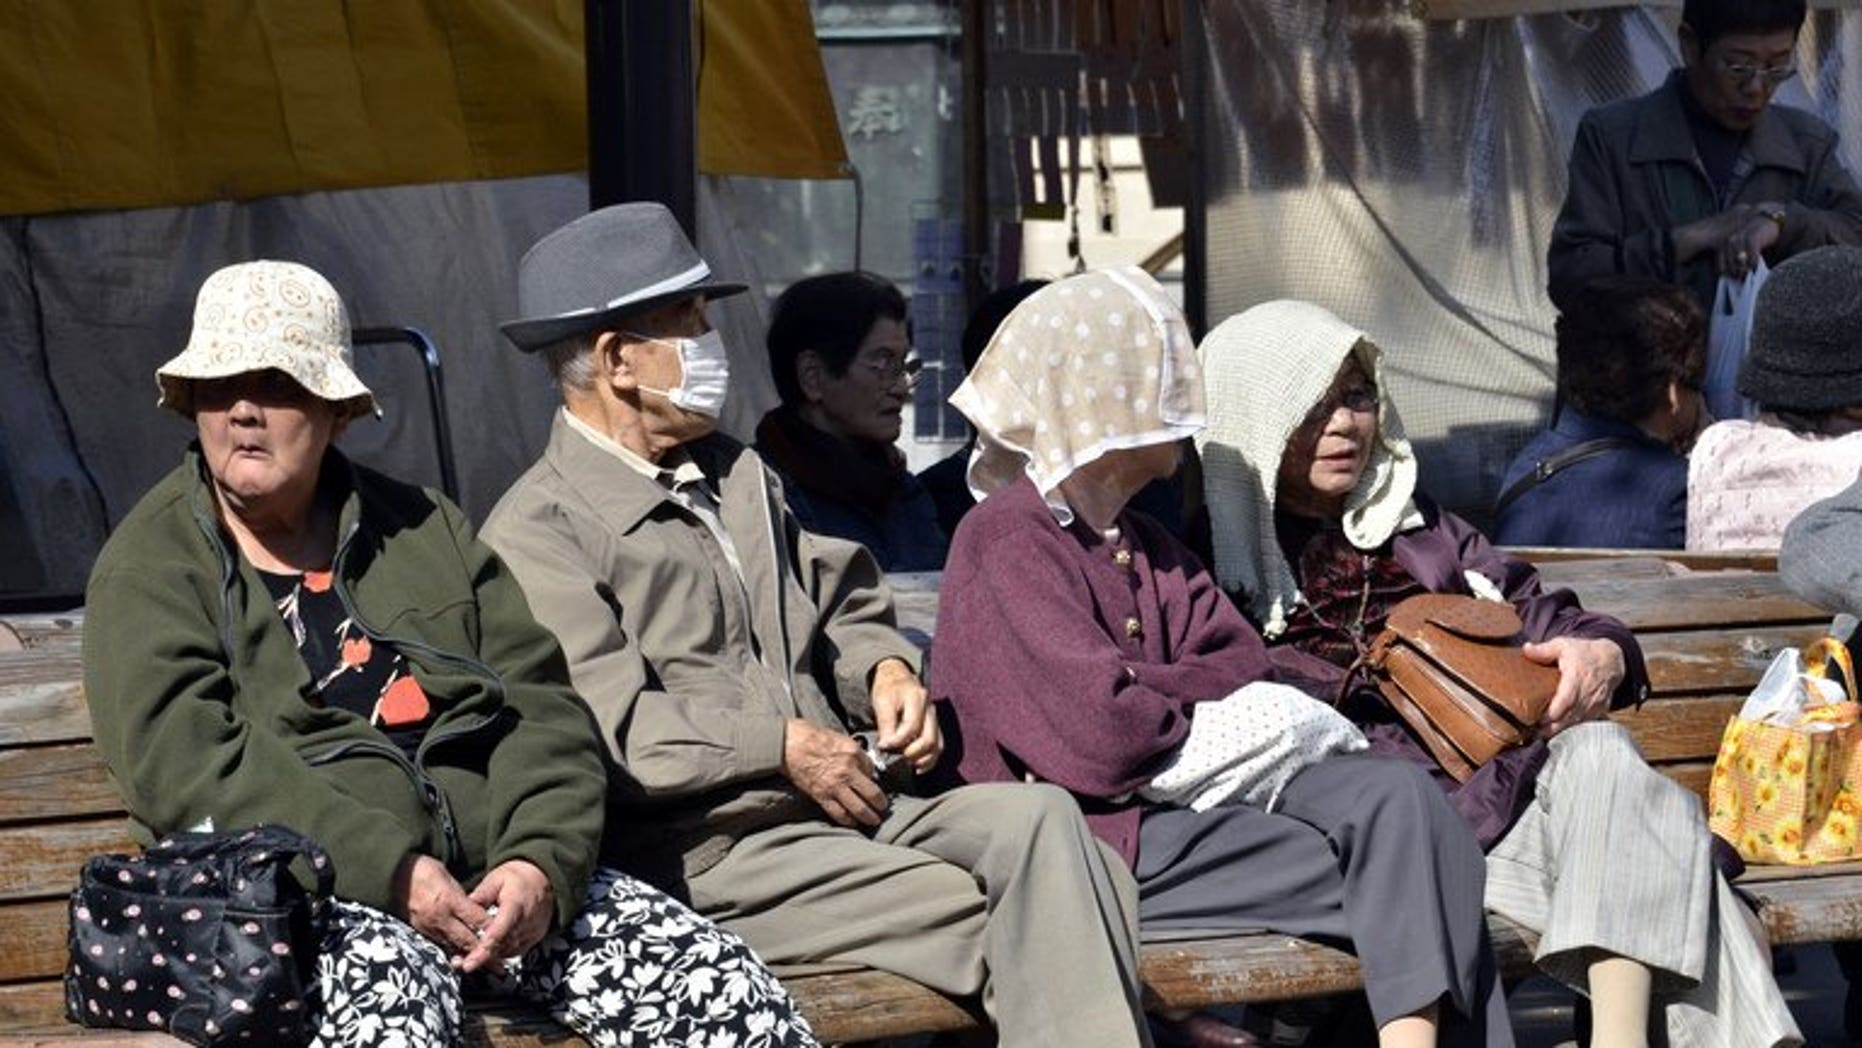 Elderly people take a rest in Tokyo on October 28, 2011. The number of elderly people caught shoplifting in Japan's capital city has outstripped that of teenagers for the first time since records began, a report said.